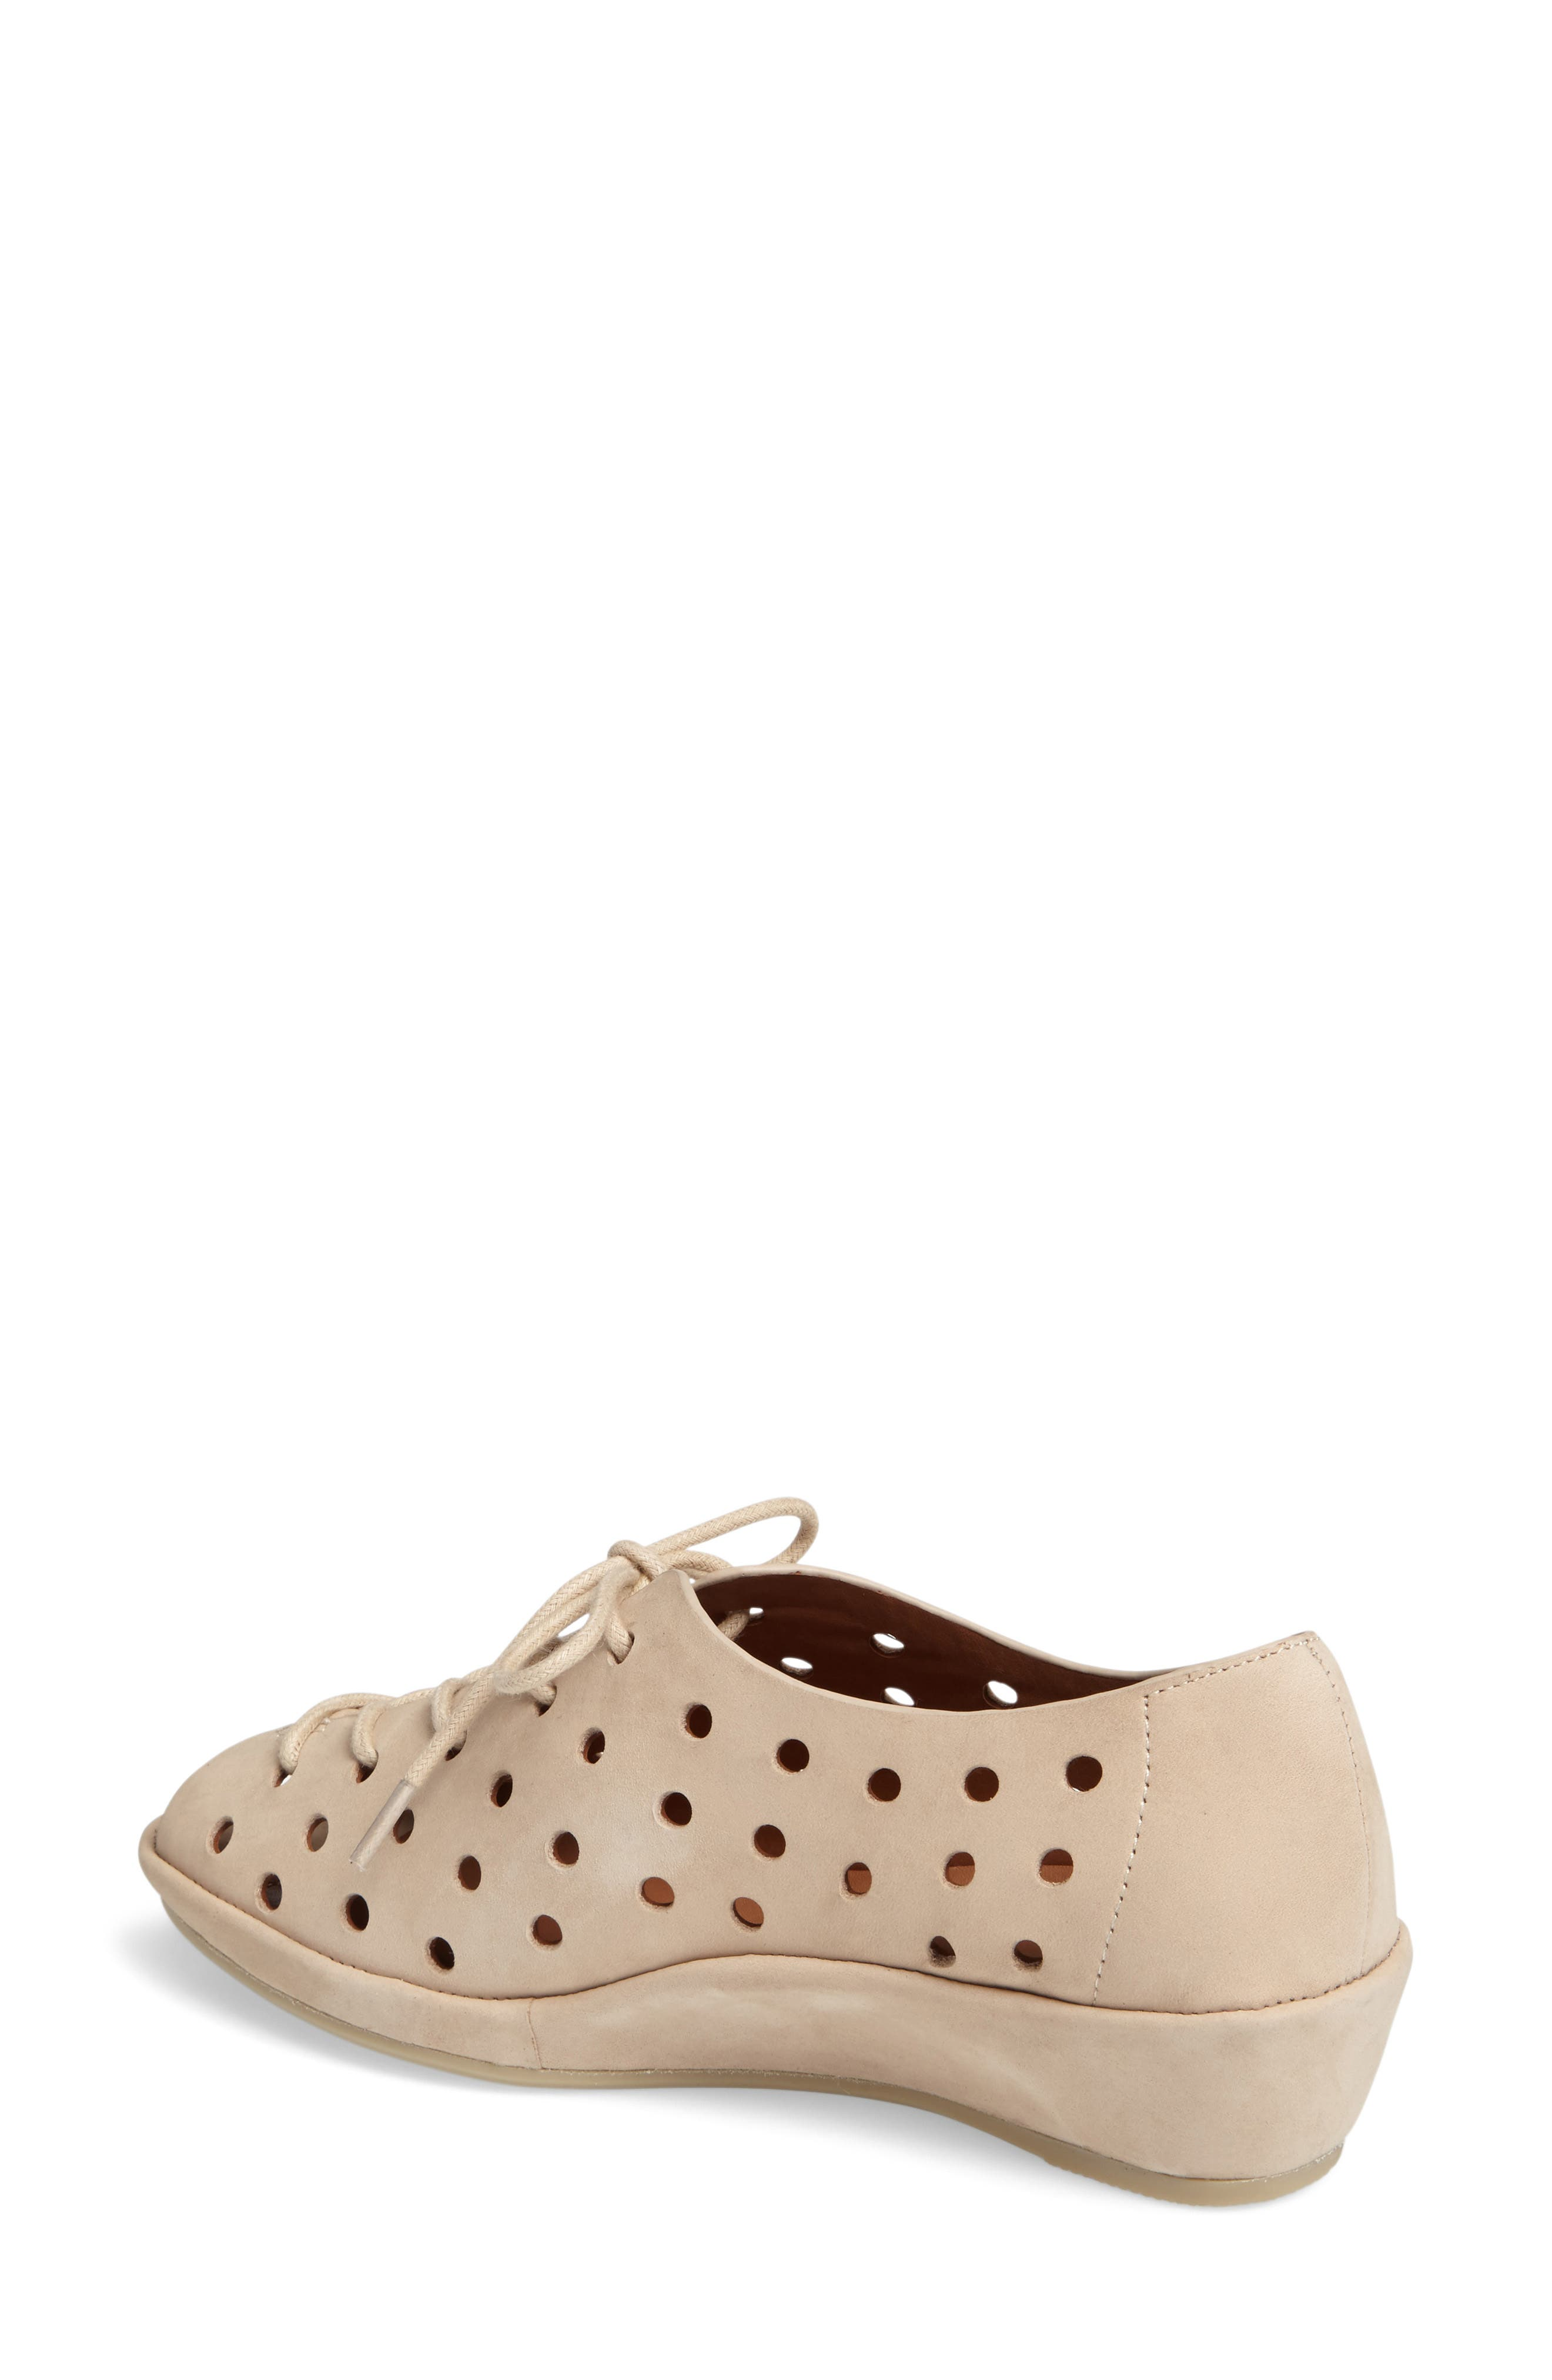 Alternate Image 2  - L'Amour des Pieds Boccoo Perforated Lace-Up Oxford (Women)